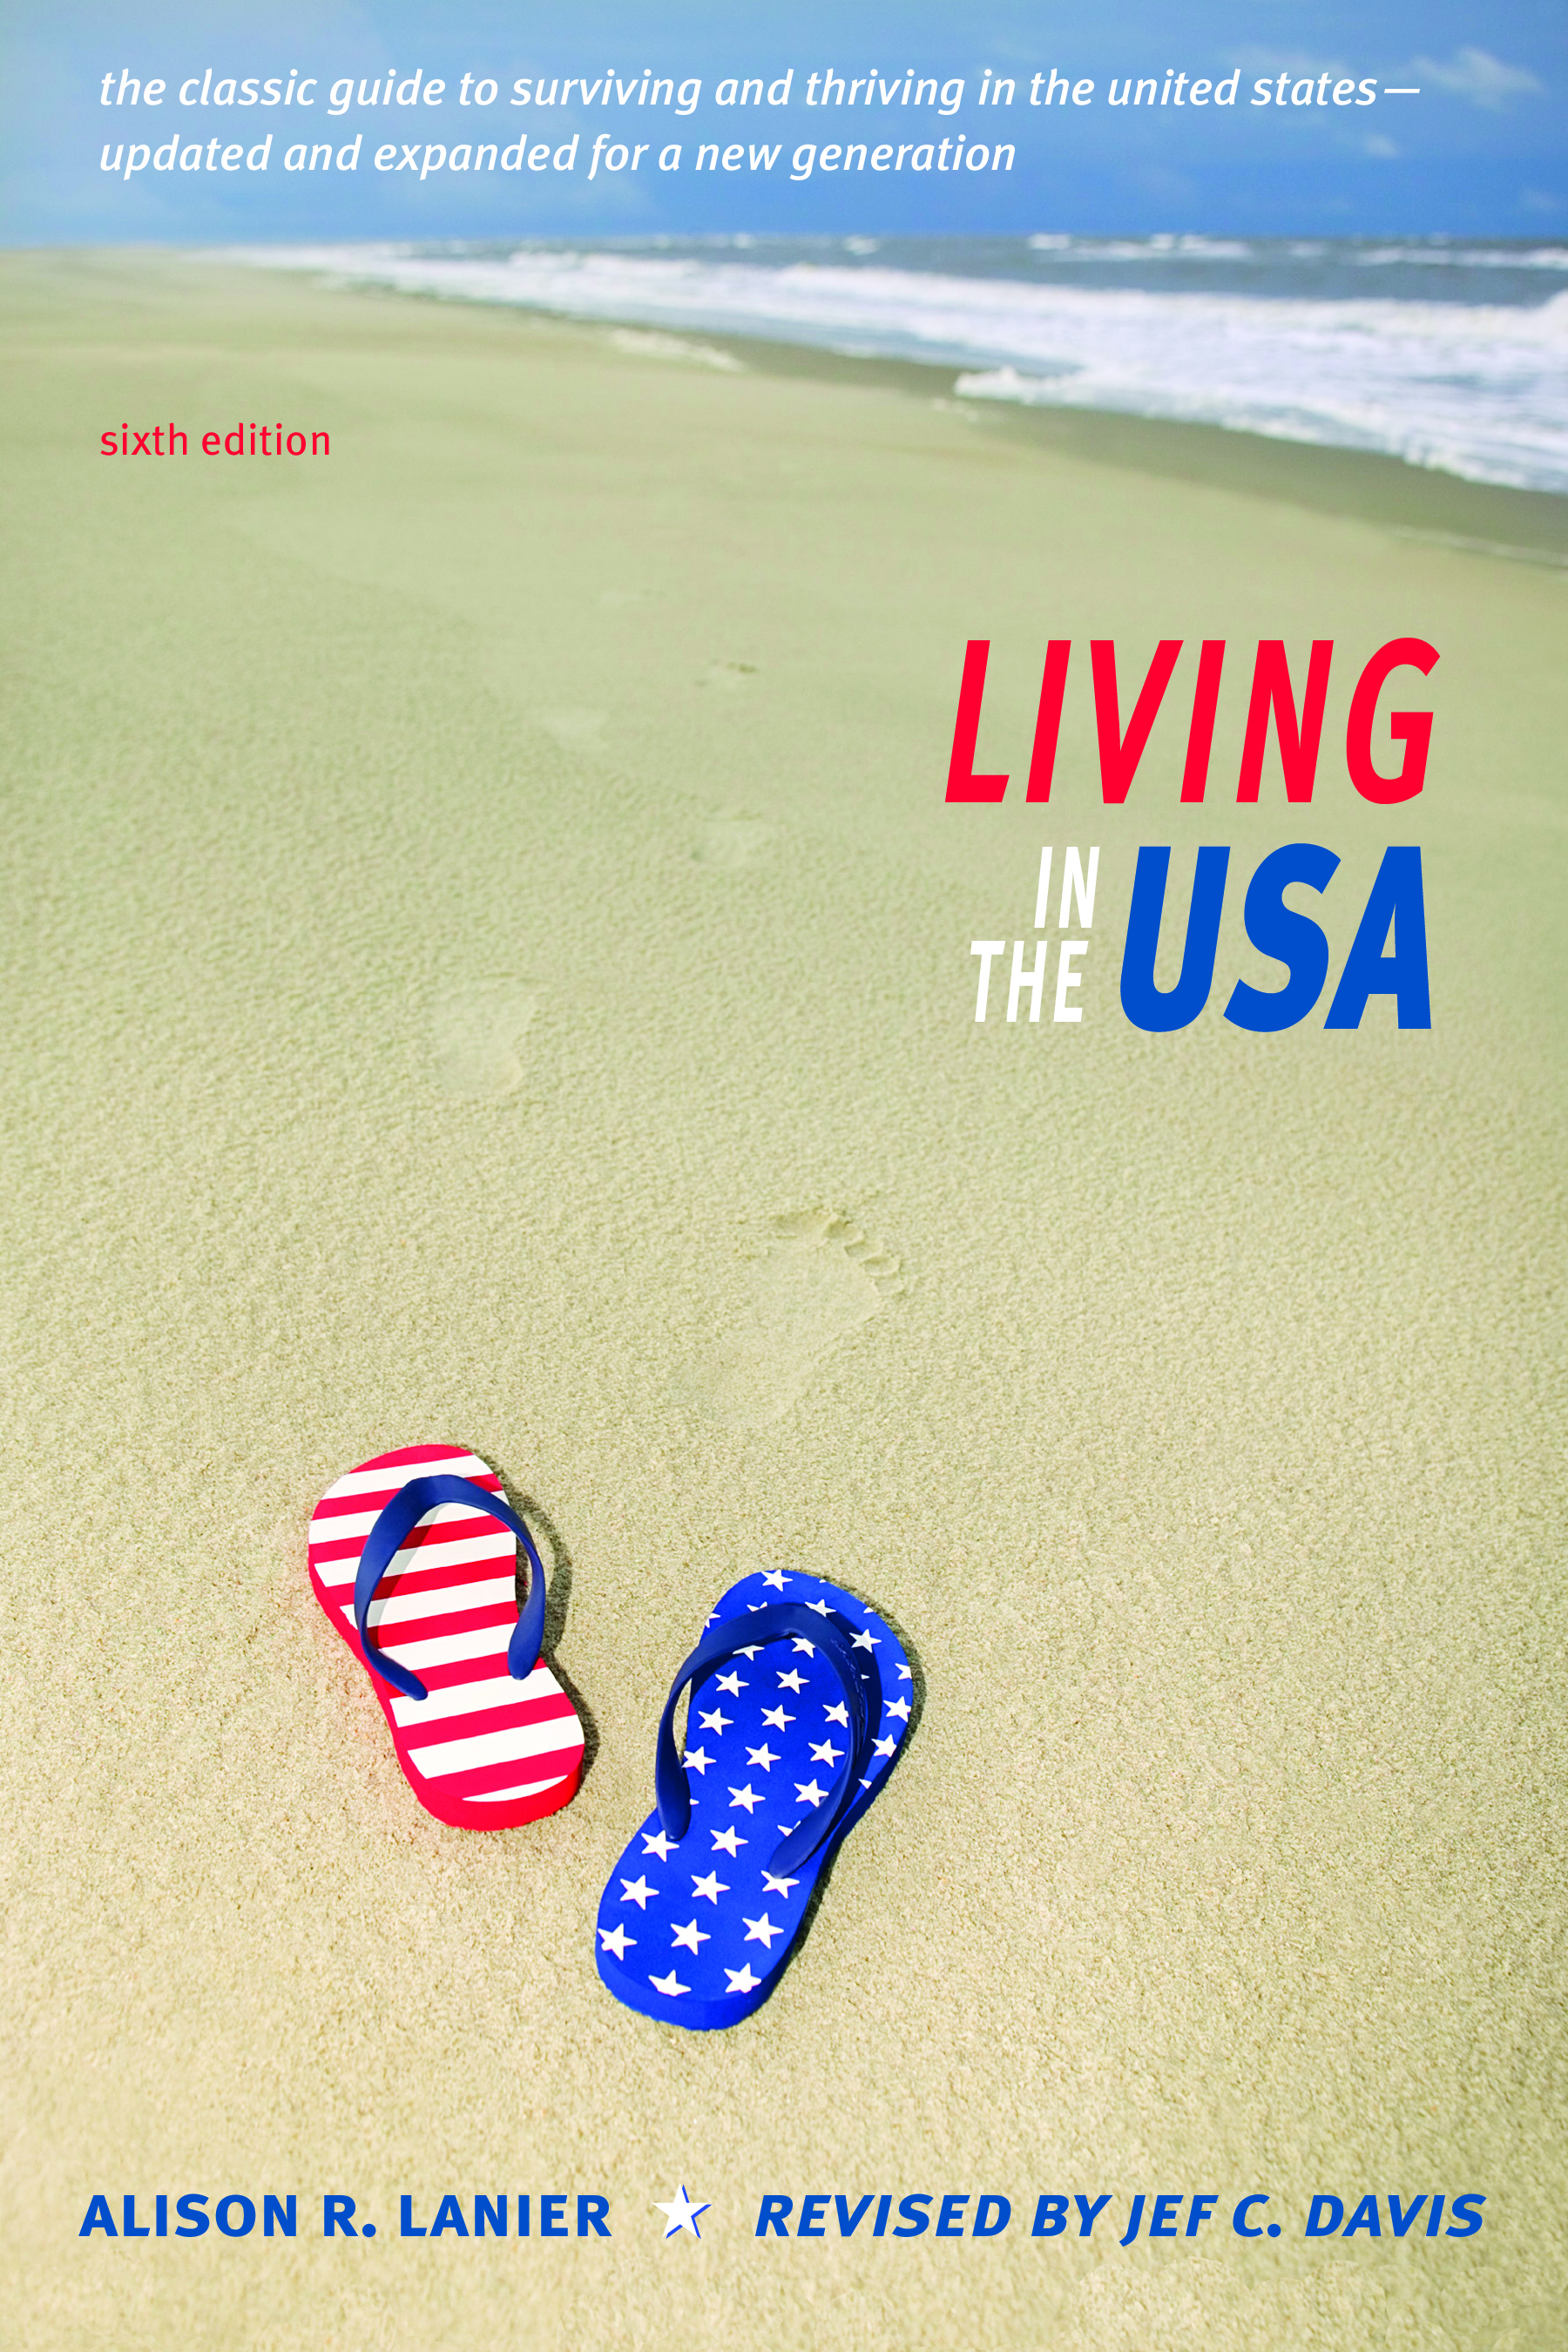 Living USA hi-res.jpg